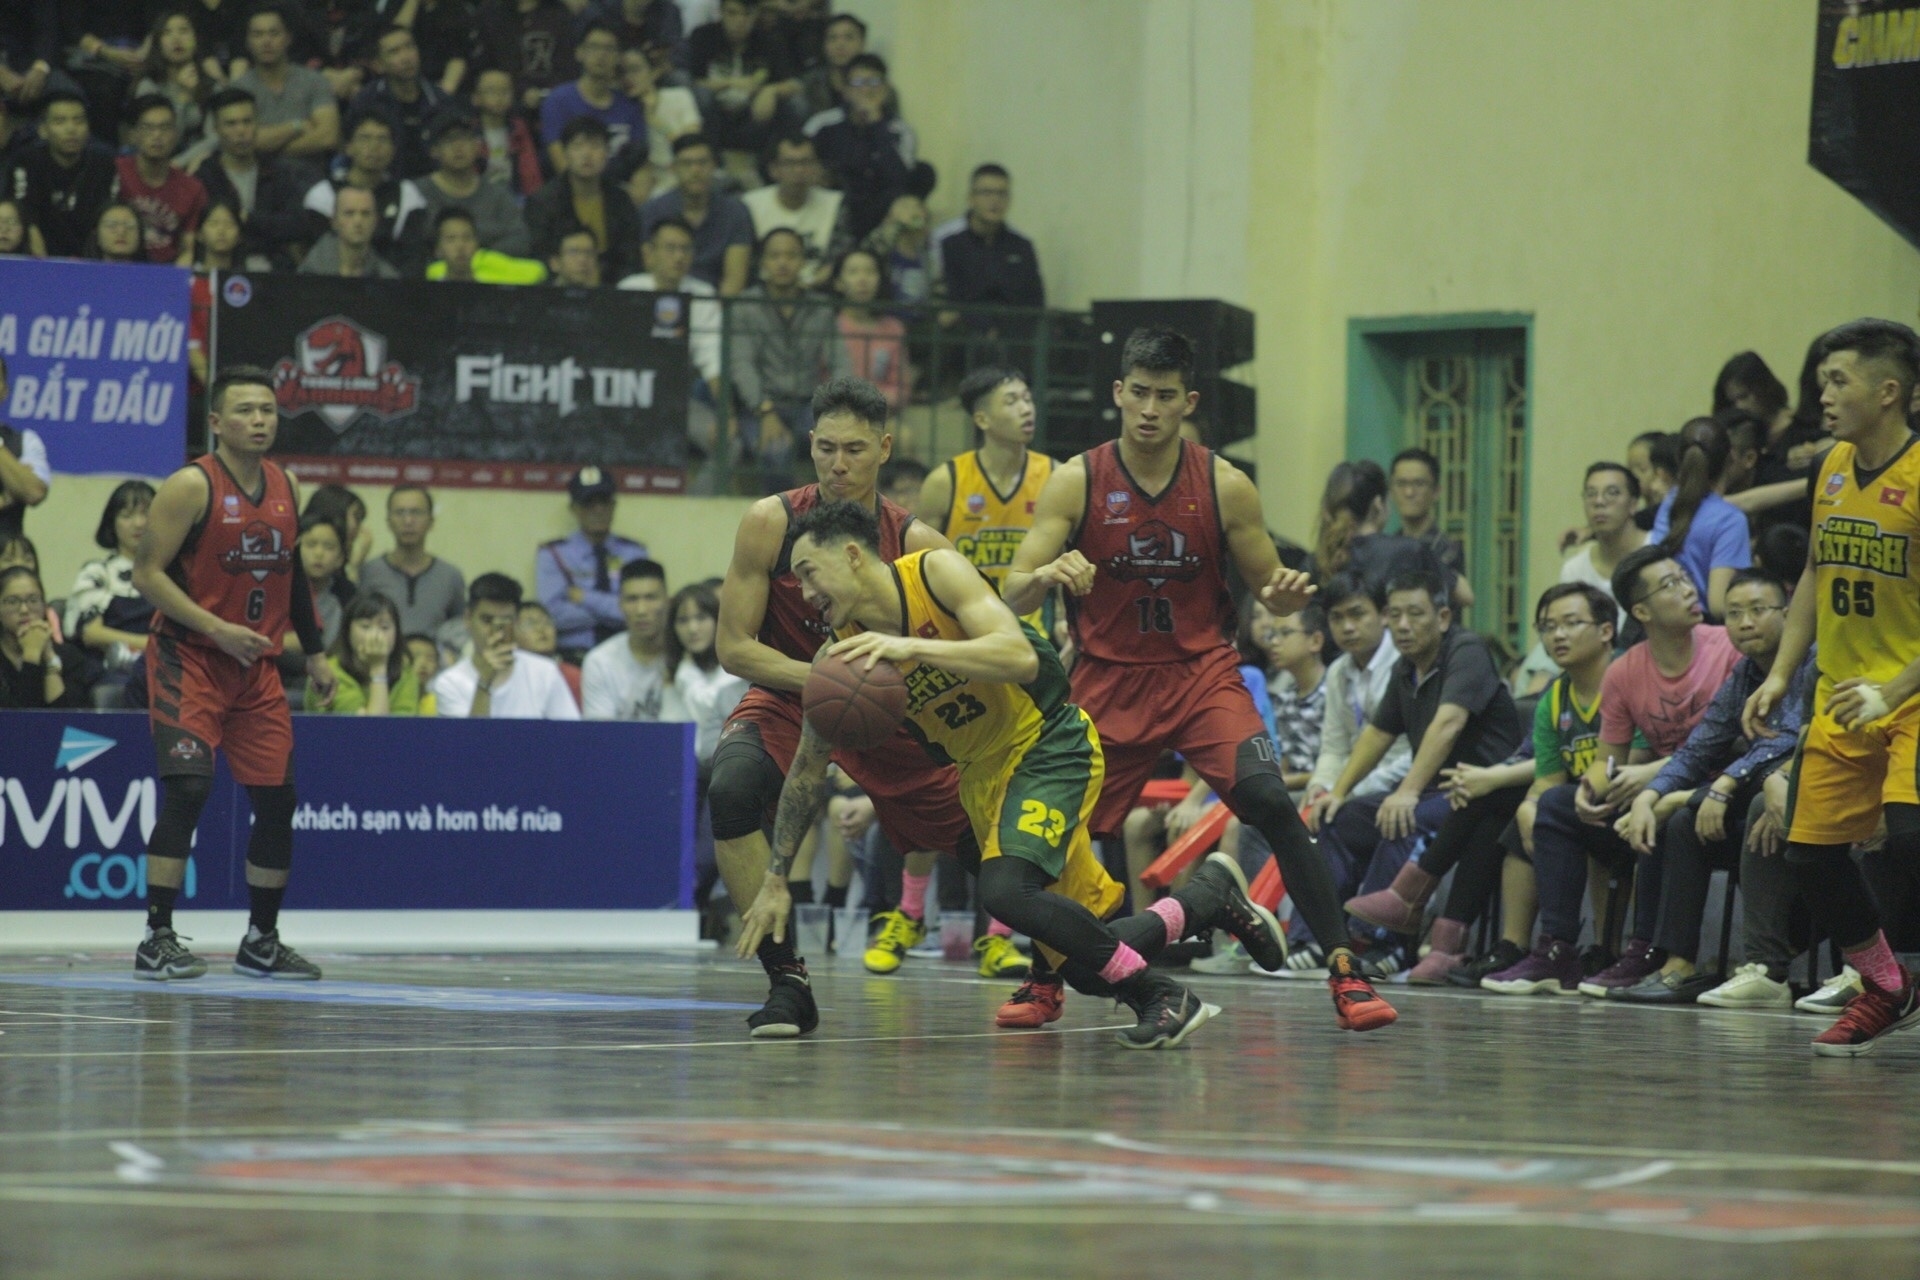 Thanglong Warriors vs Cantho Catfish anh 29